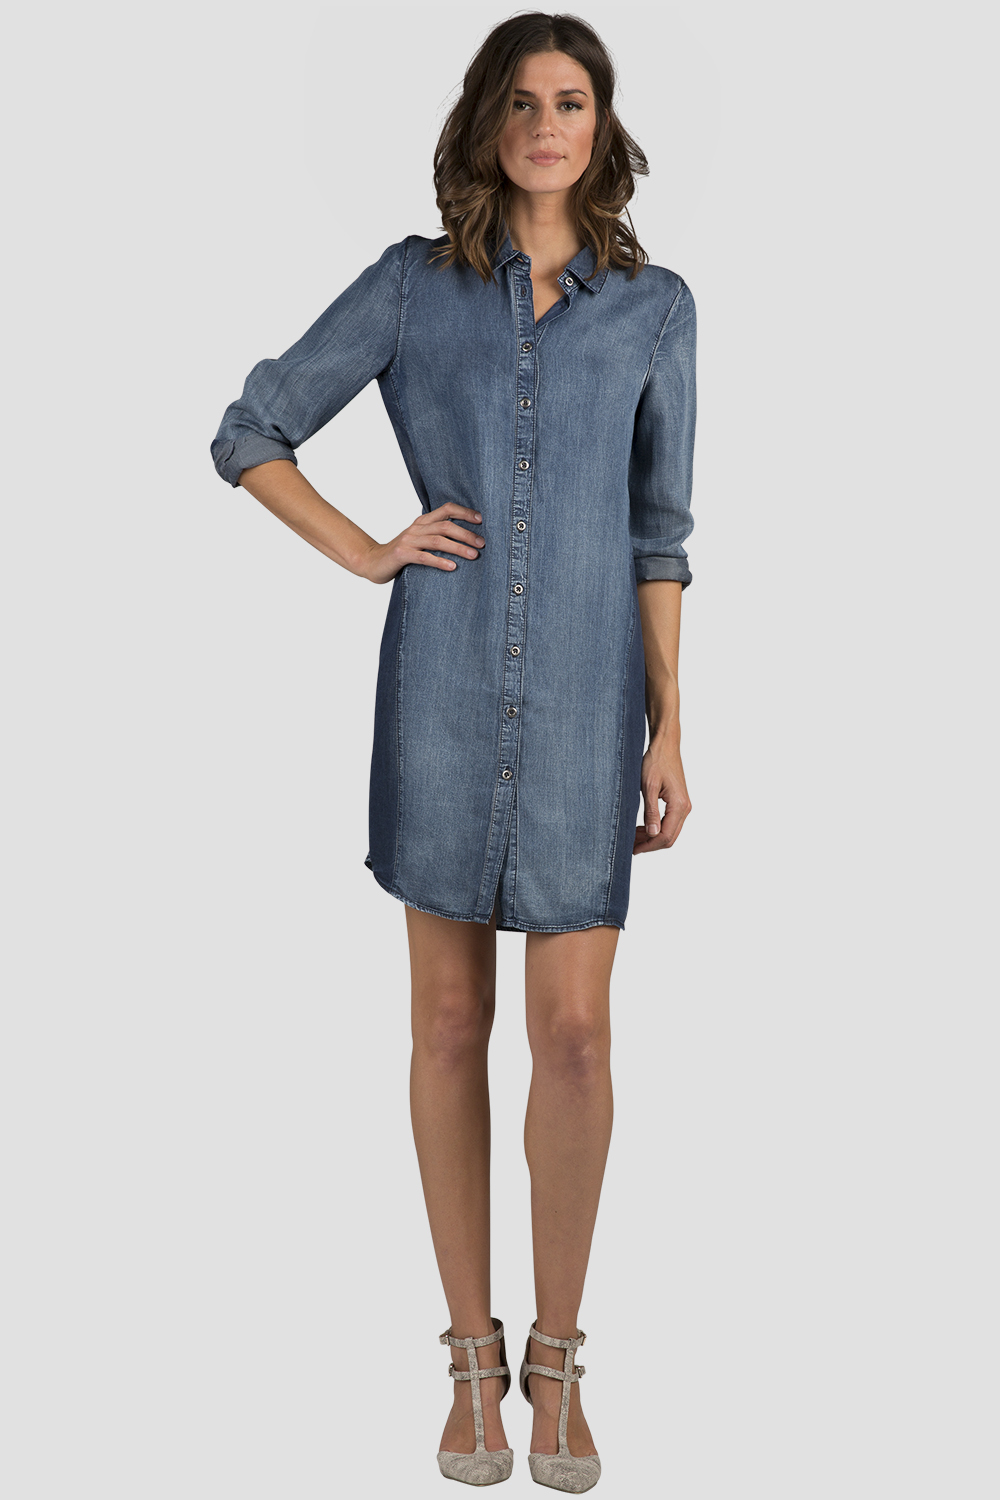 Standards & Practices Women's Chambray Denim Shirt Dress